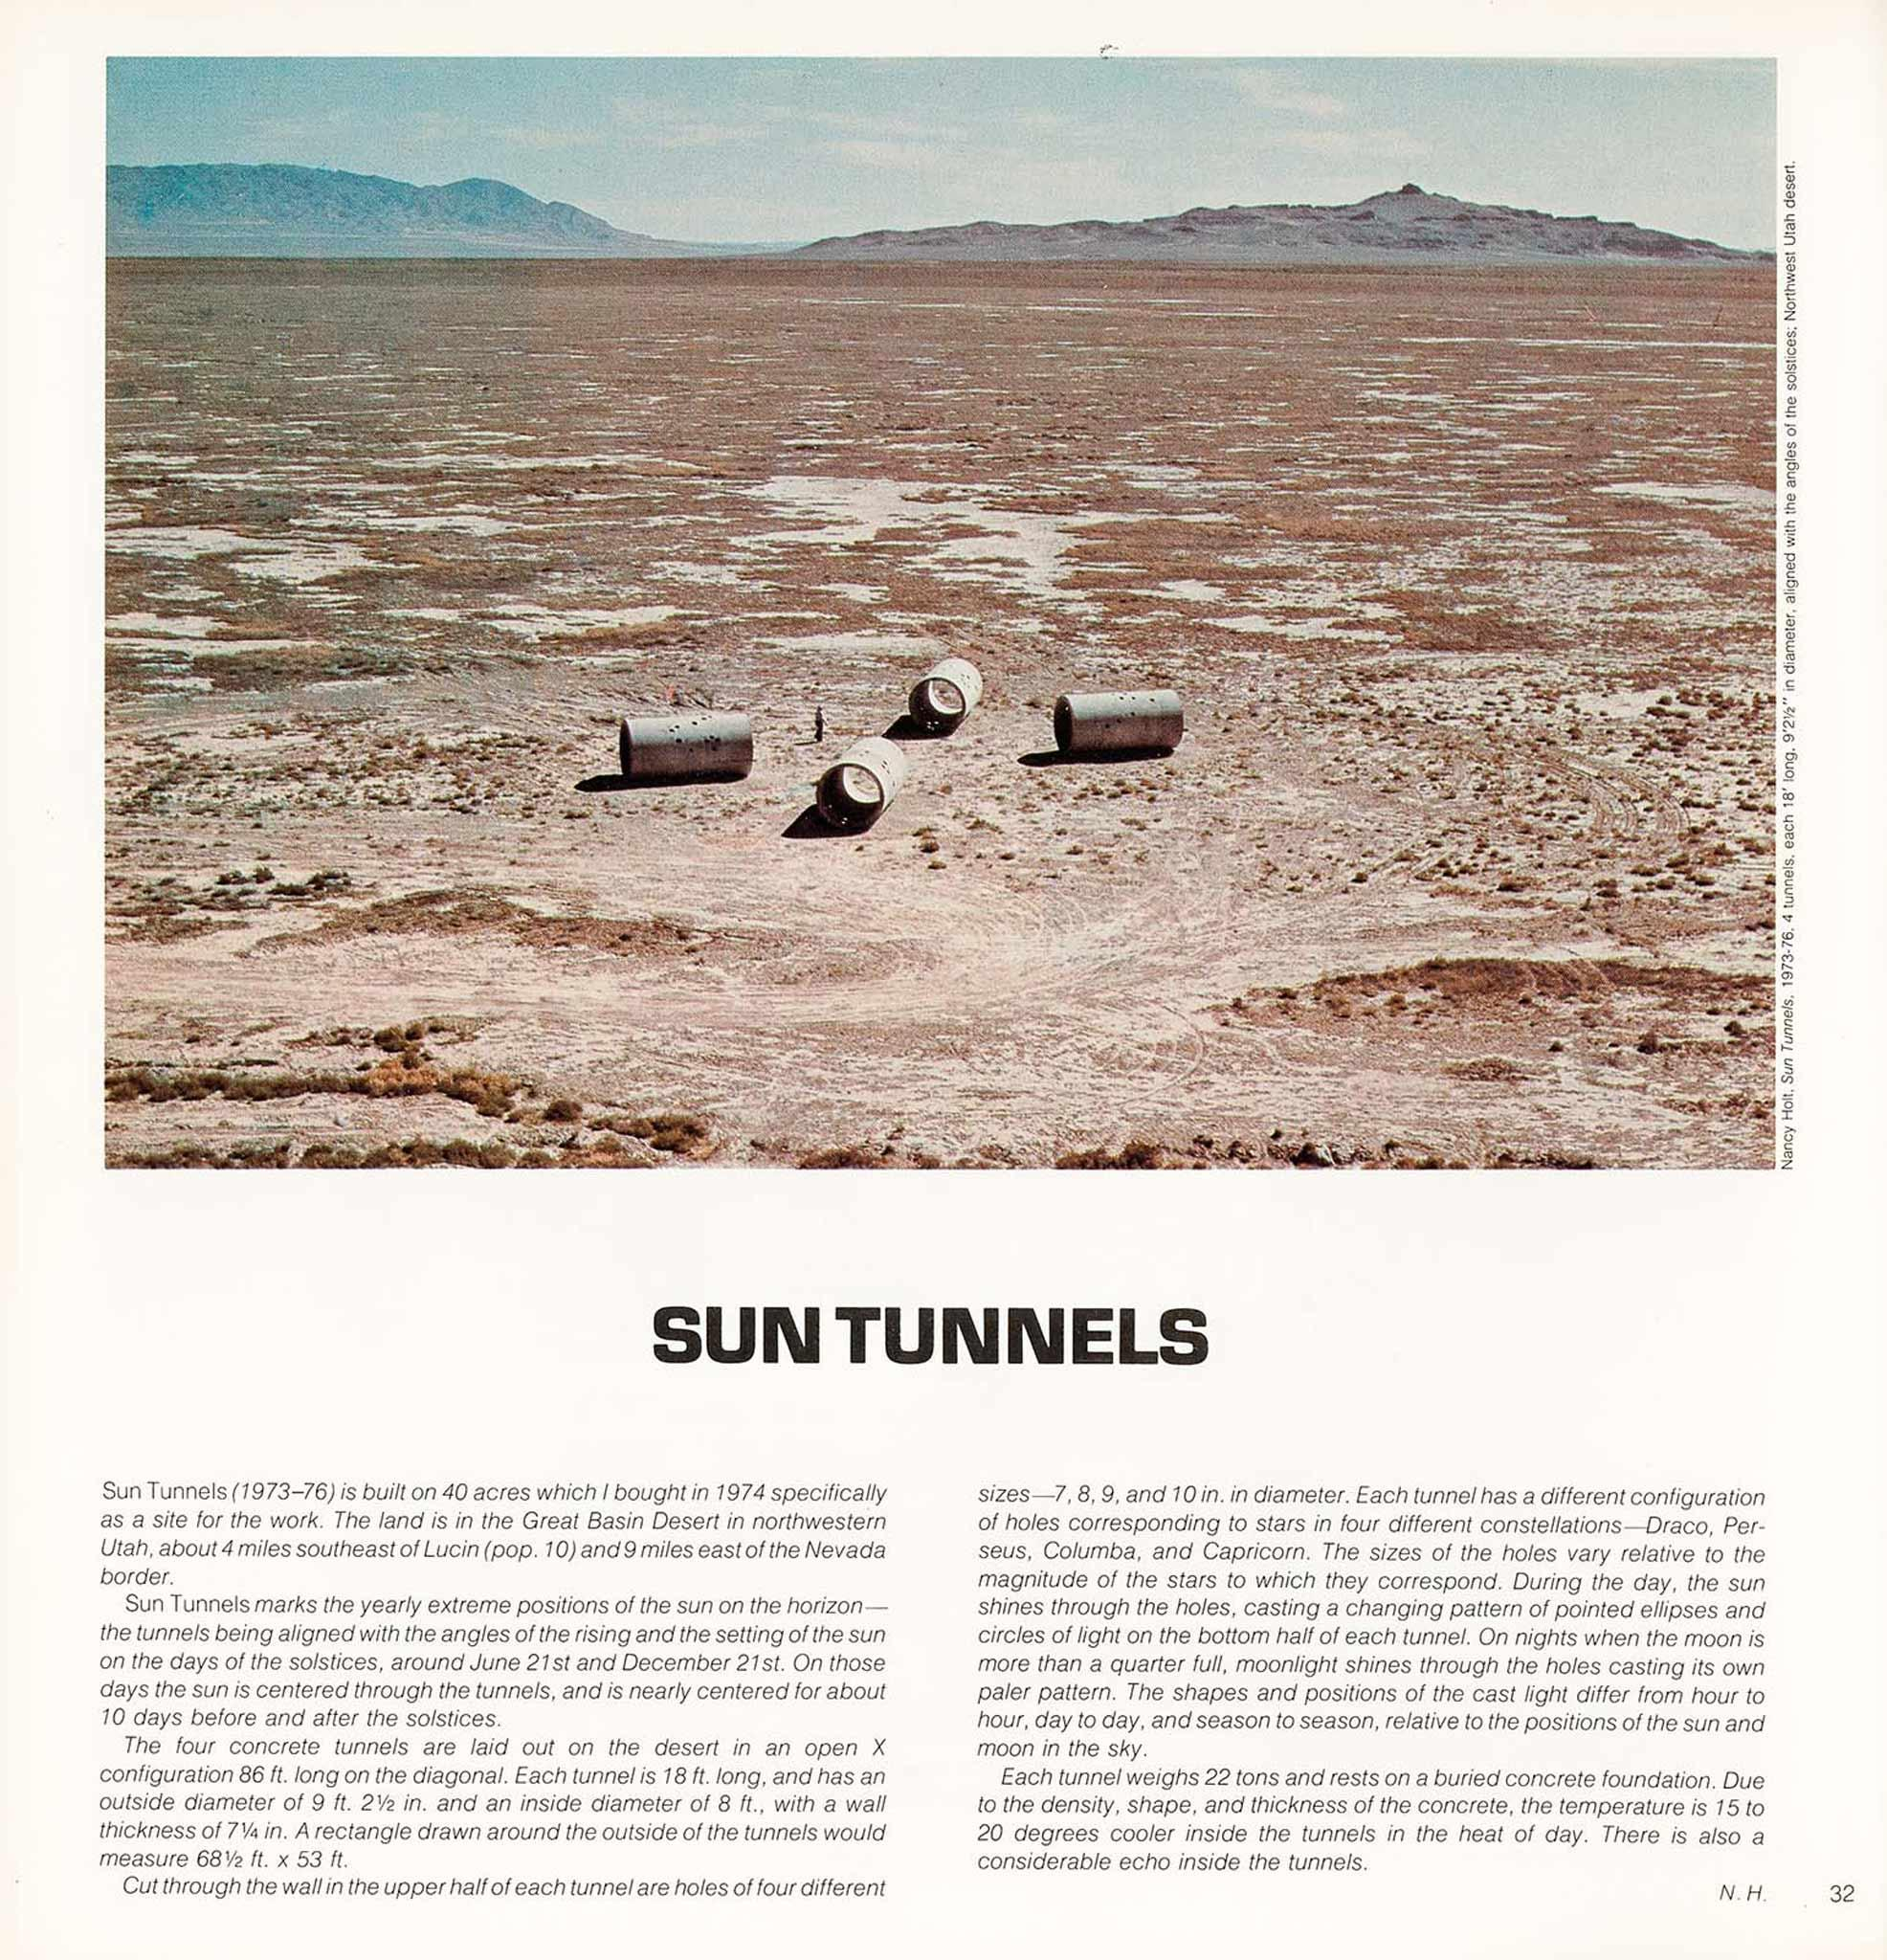 Magazine layout with image on top with text underneath. aerial image of the desert with mountains in the background.  In the center of the image are four concrete tunnels aligned in an X shape.